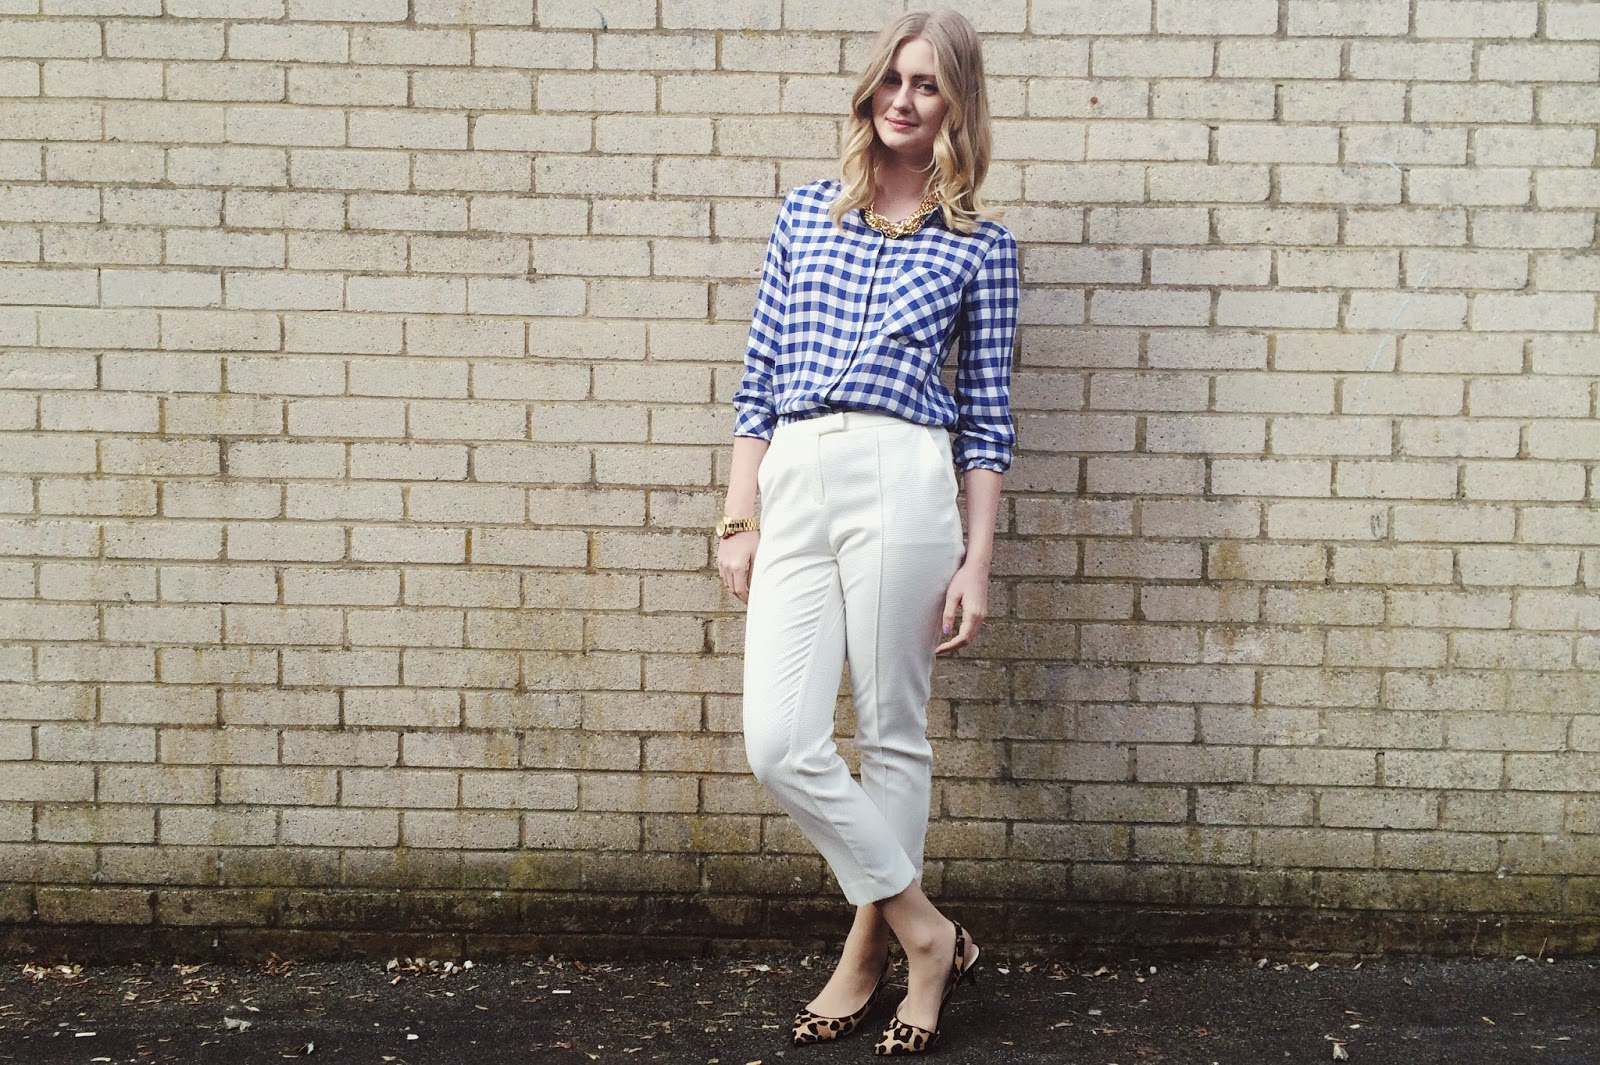 FashionFake, a UK fashion and lifestyle blog. Zara gingham shirt and Primark white trousers add a spring brightness to this simple yet stylish outfit.